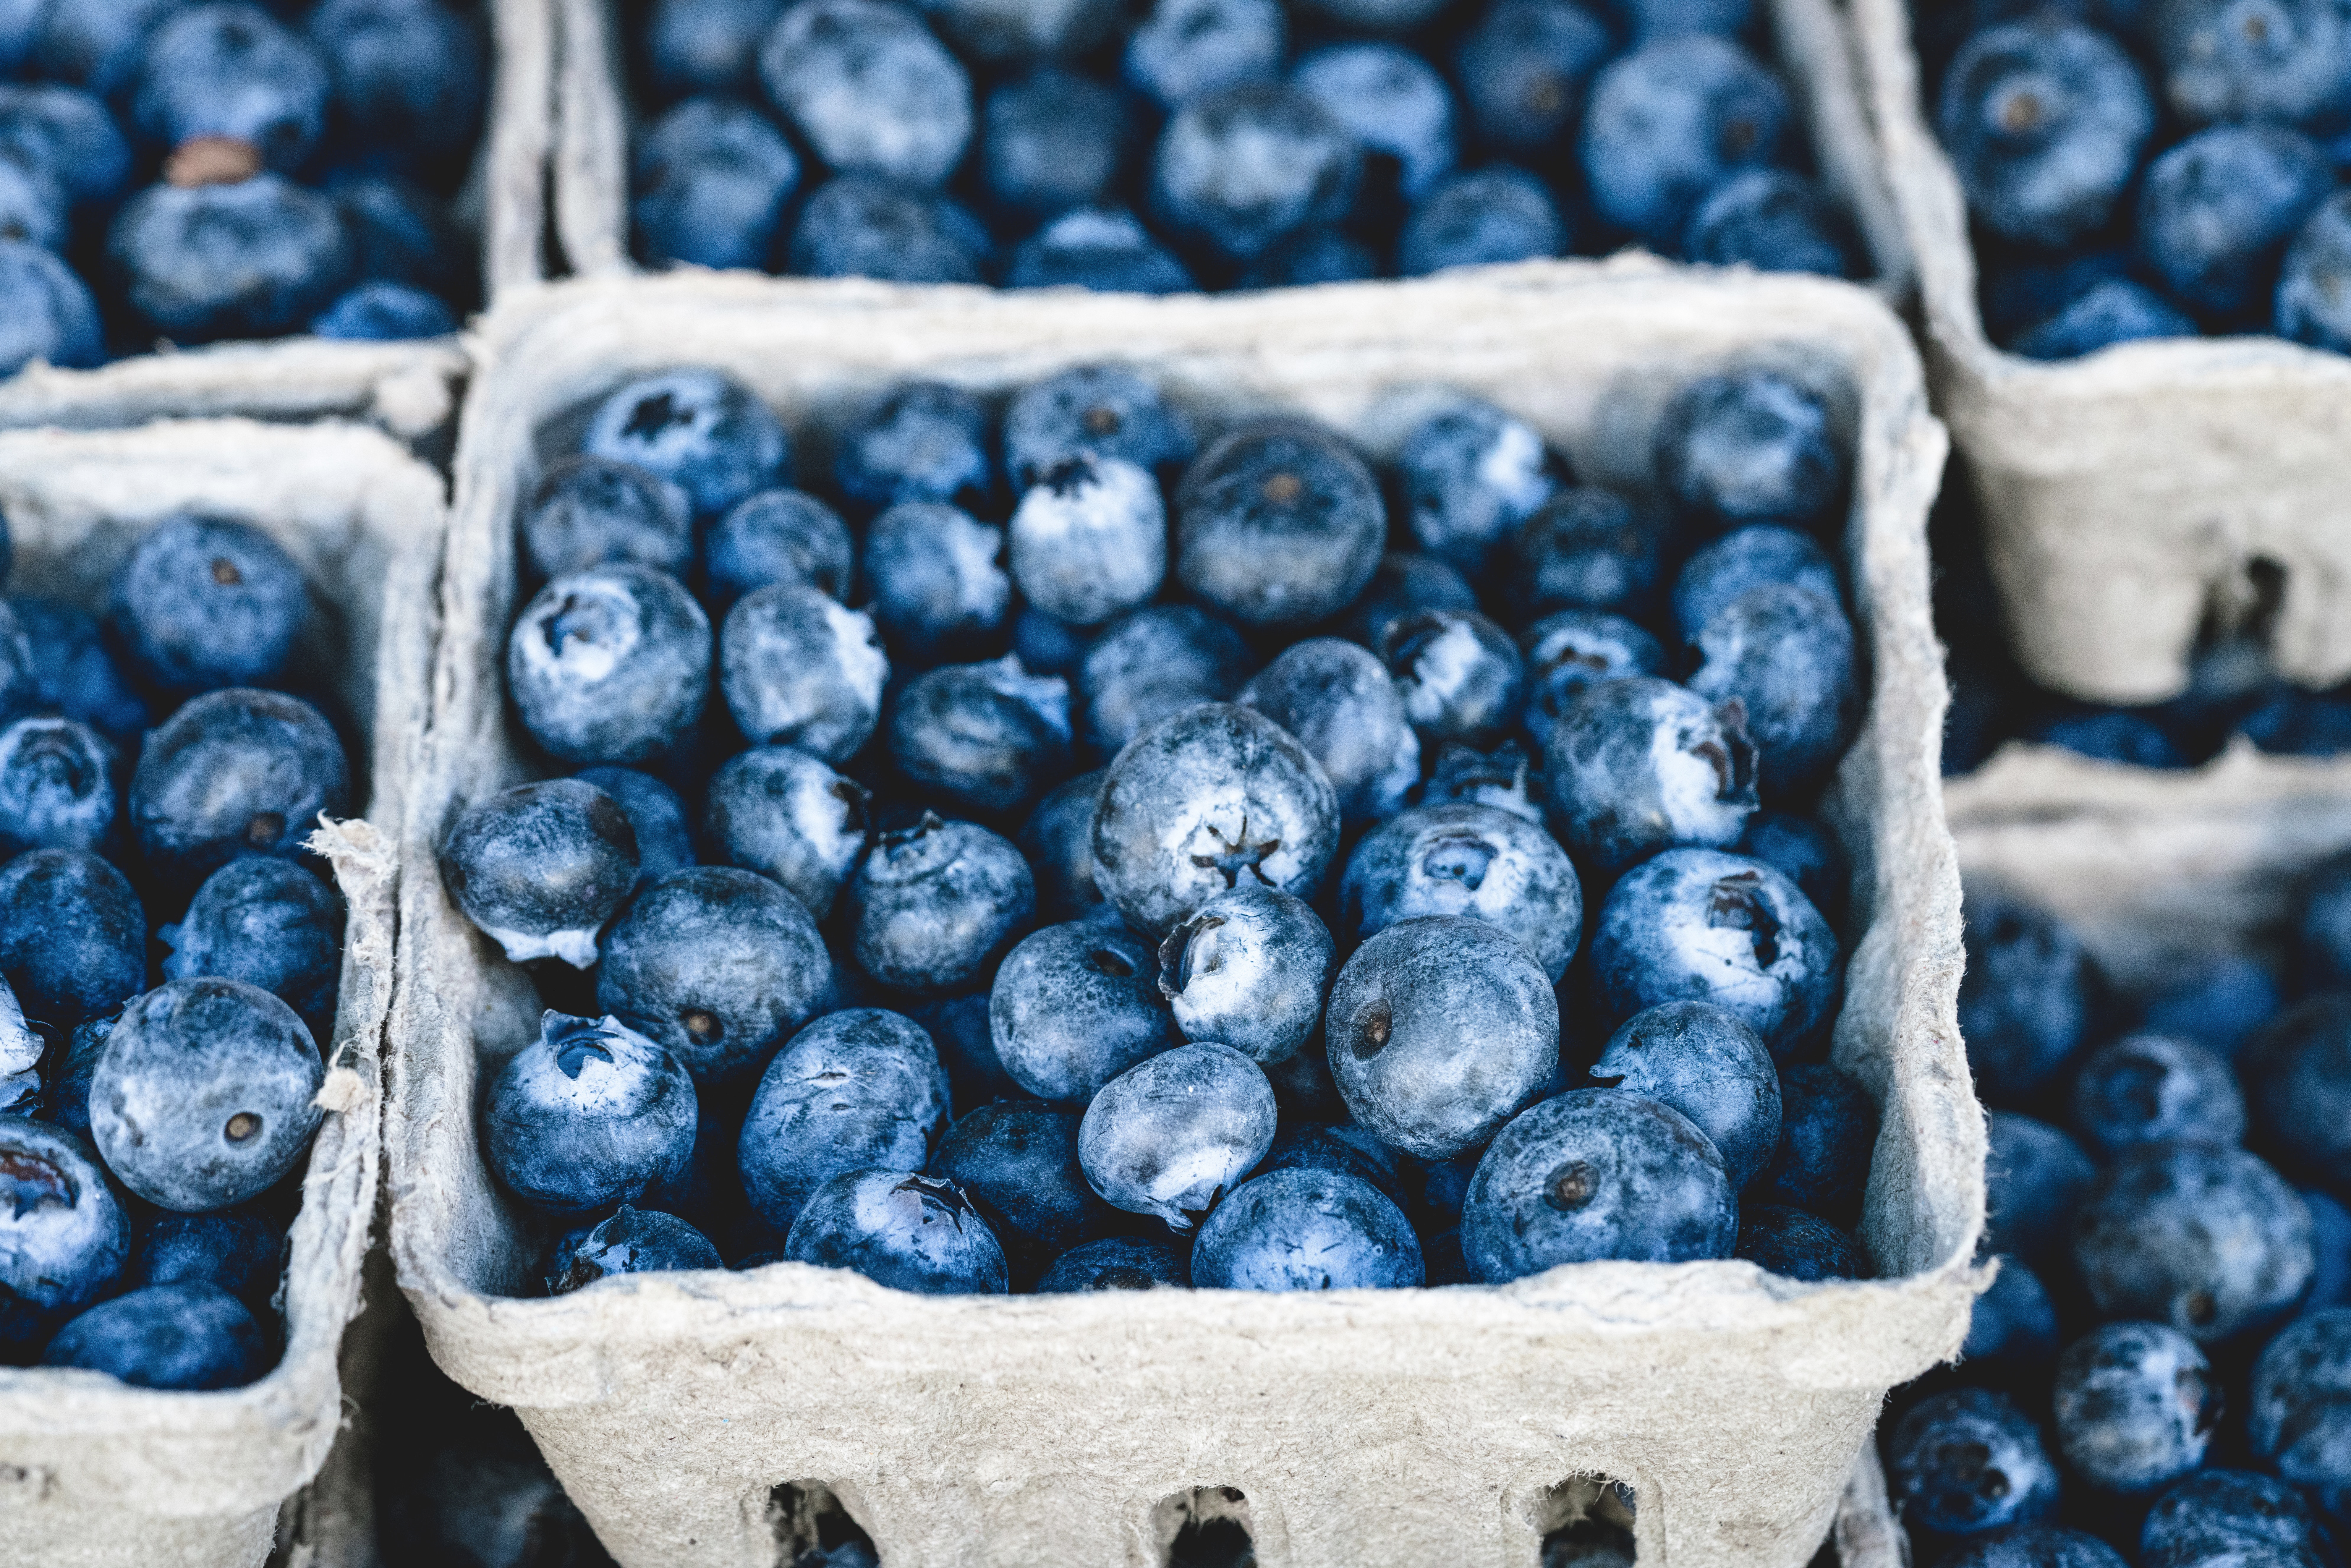 blueberries in cardboard containers